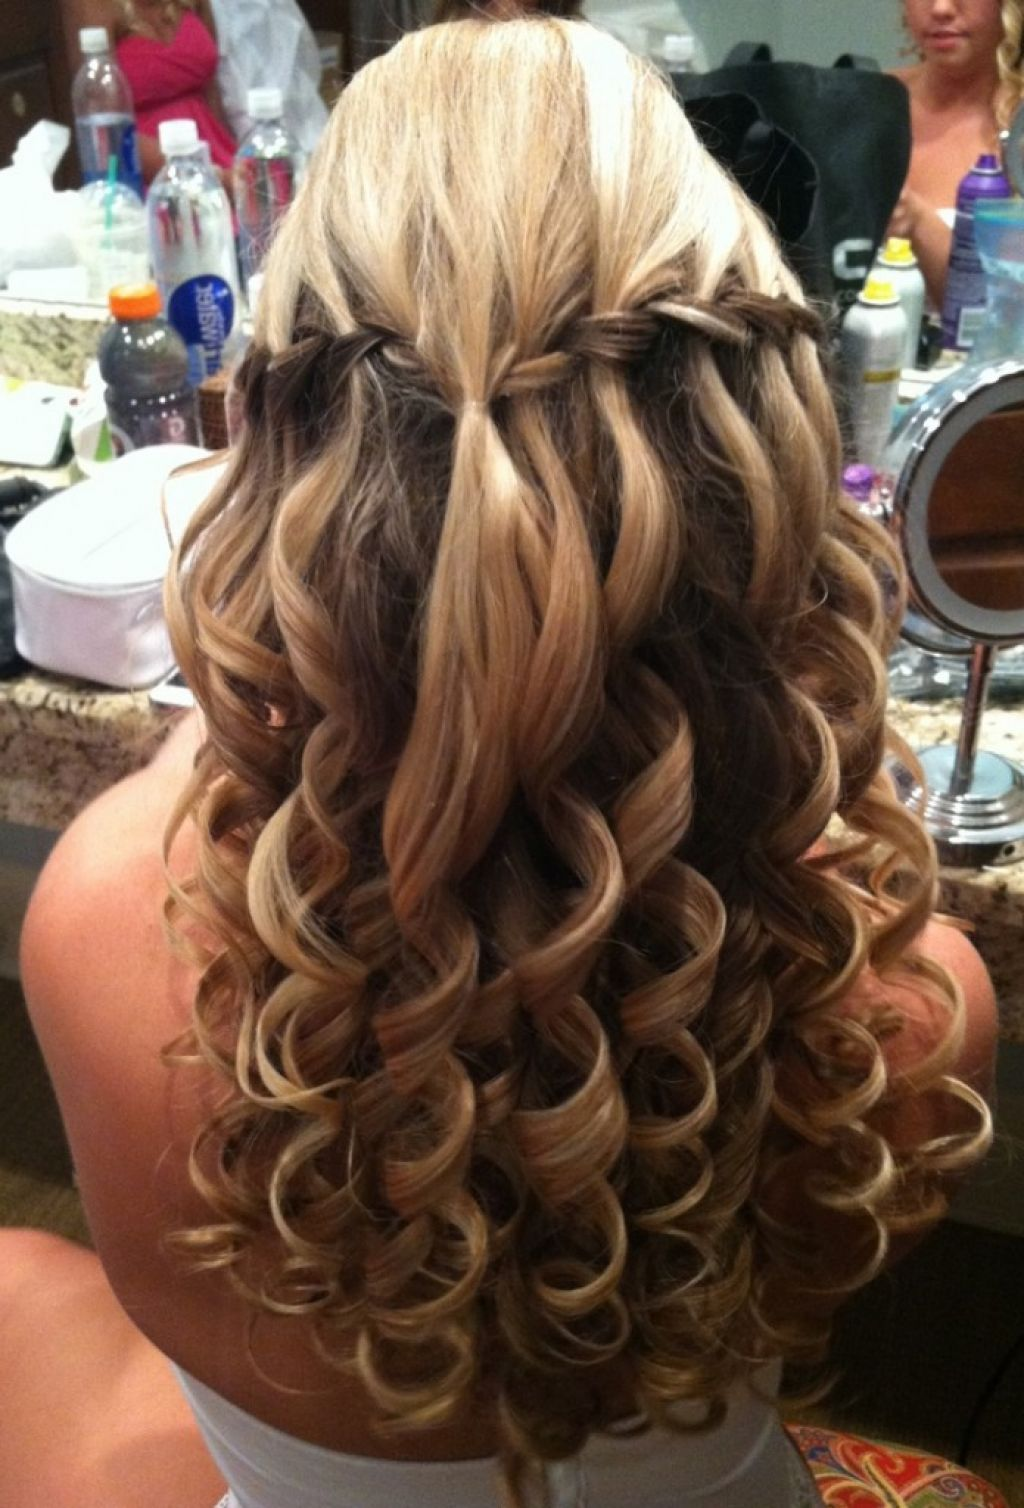 Up Half Down Hair For Prom Hairstyles Pinterest Prom Hairstyles For Long Hair Long Hair Styles Prom Hair Hair Styles